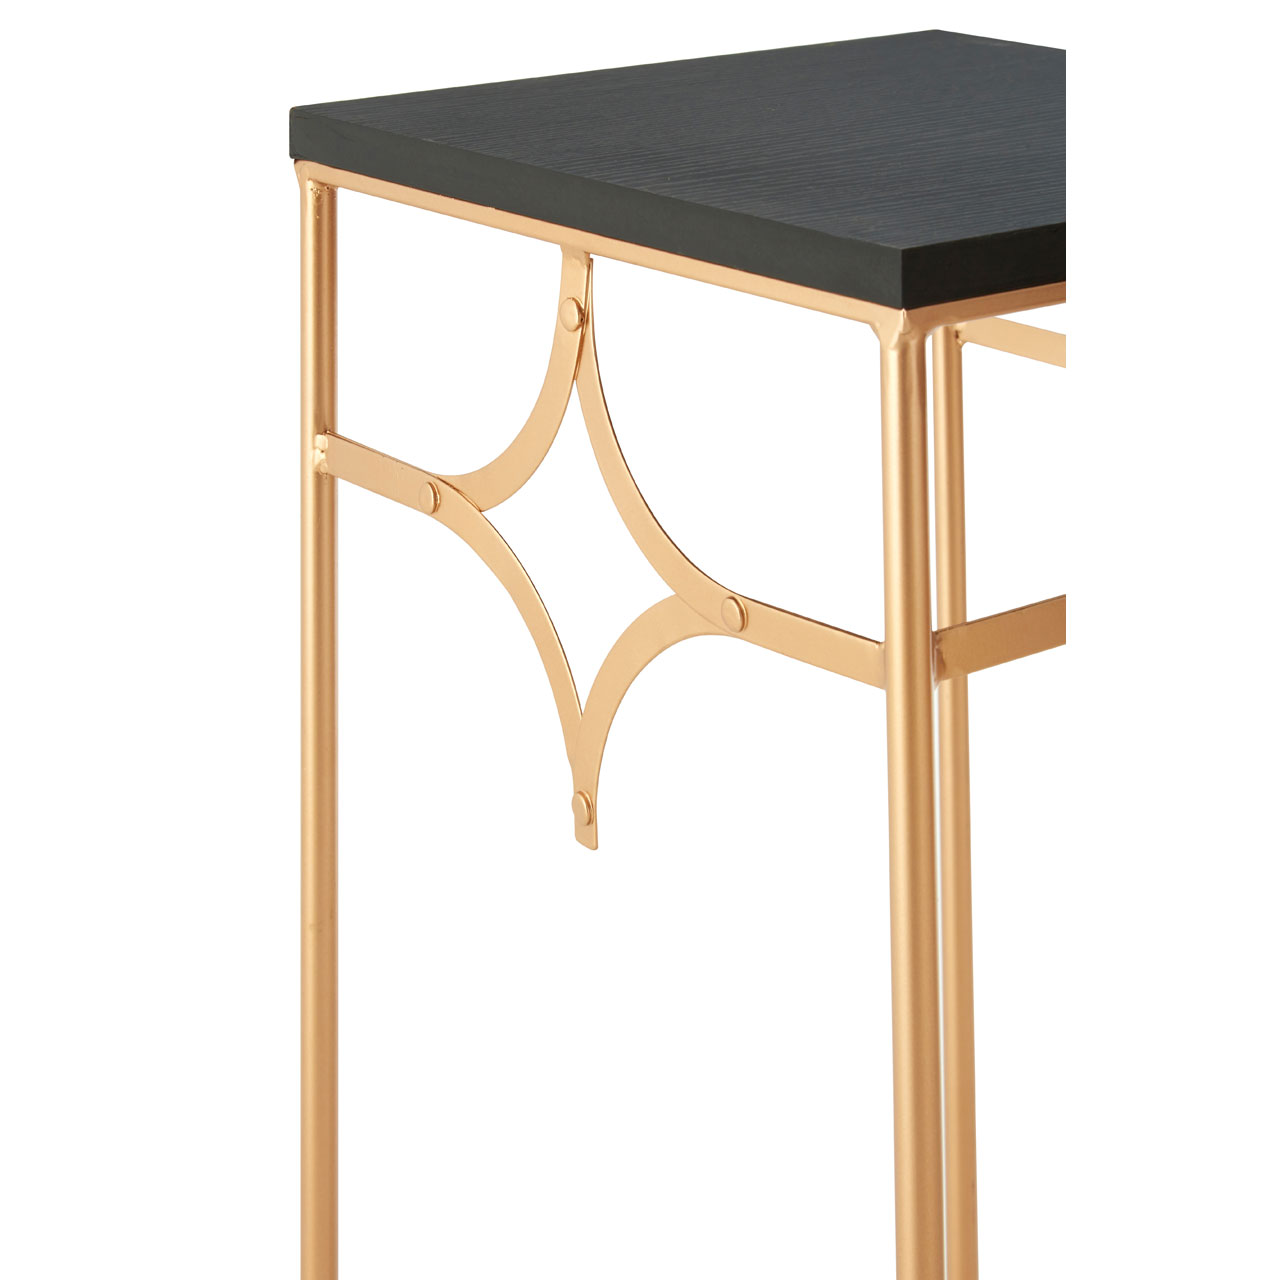 premier lexa plant end accent tables set rose gold mac table black stackable warm metalic finish contemporary marble dining home clocks wire side target couch covers kmart storage